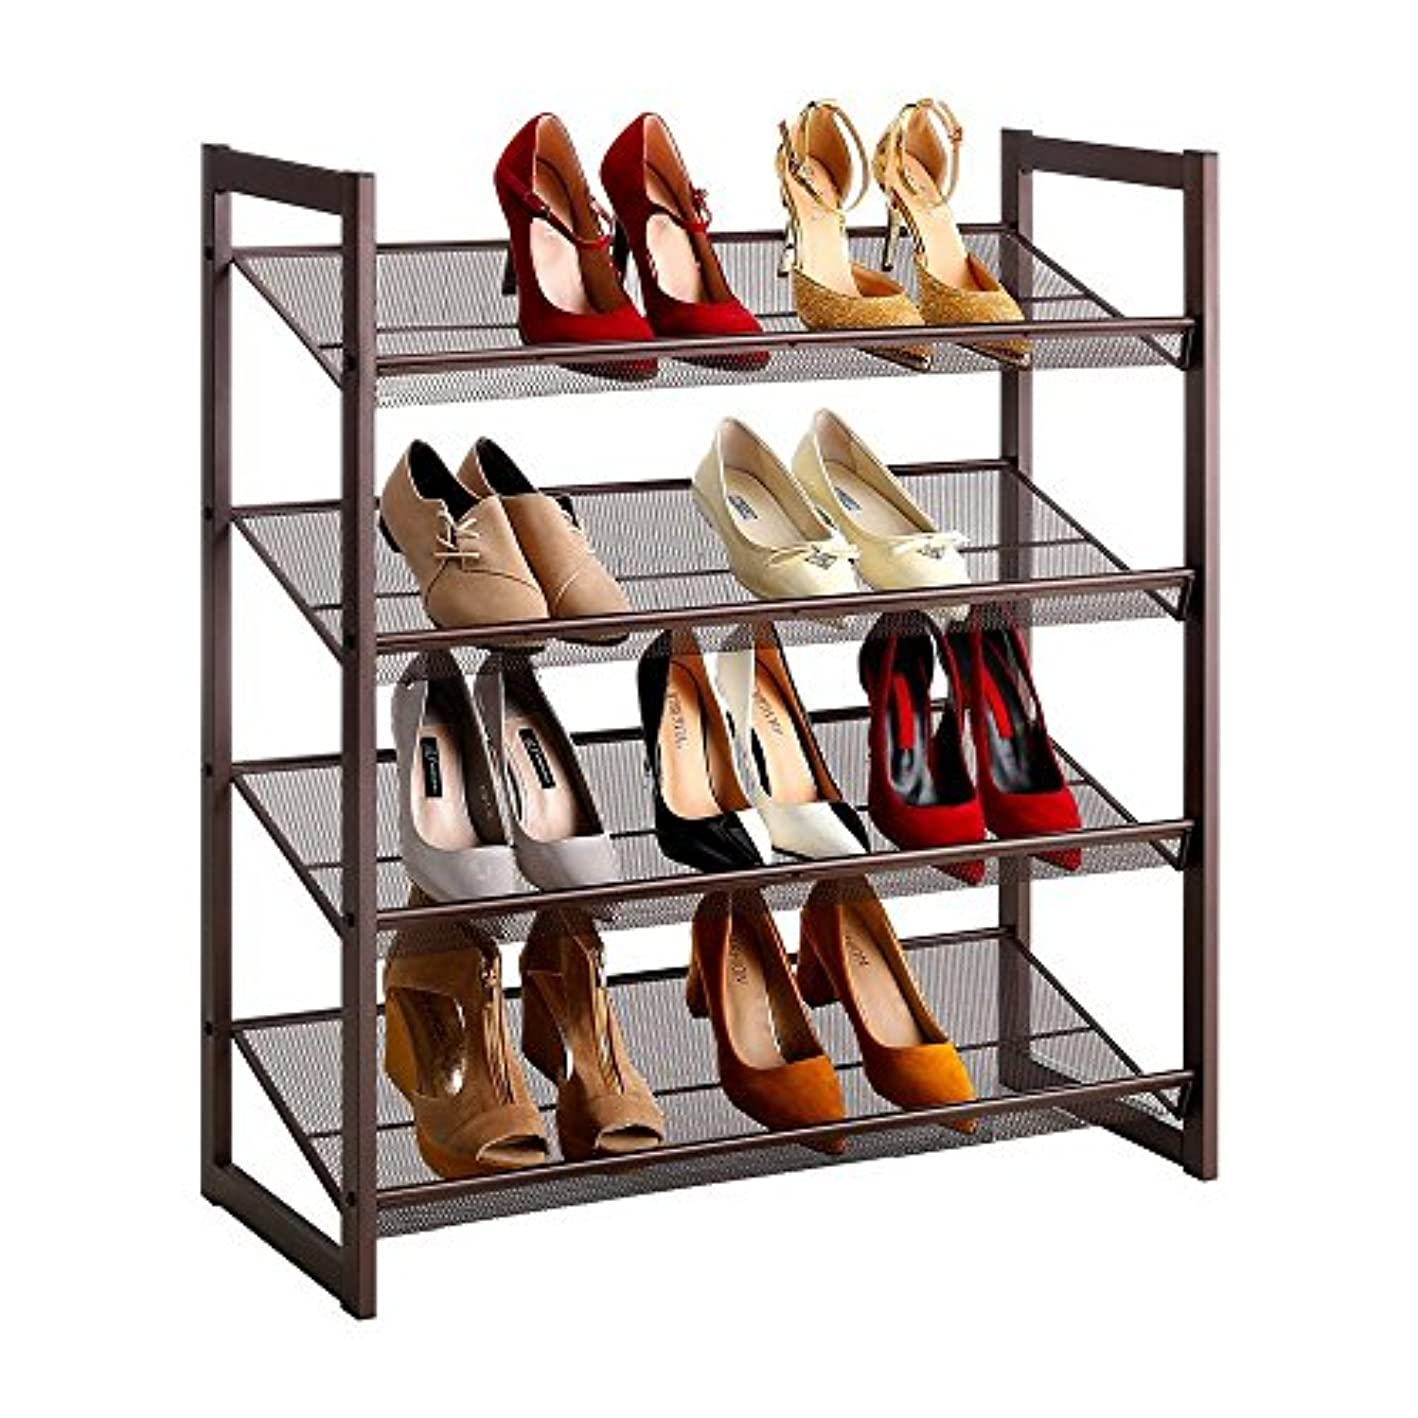 4-Tier Stackable Metal Mesh Shoe Rack Shoe Organizer Shelf Storage Organizer Rack for Closet Bedroom Entryway Chromeplate